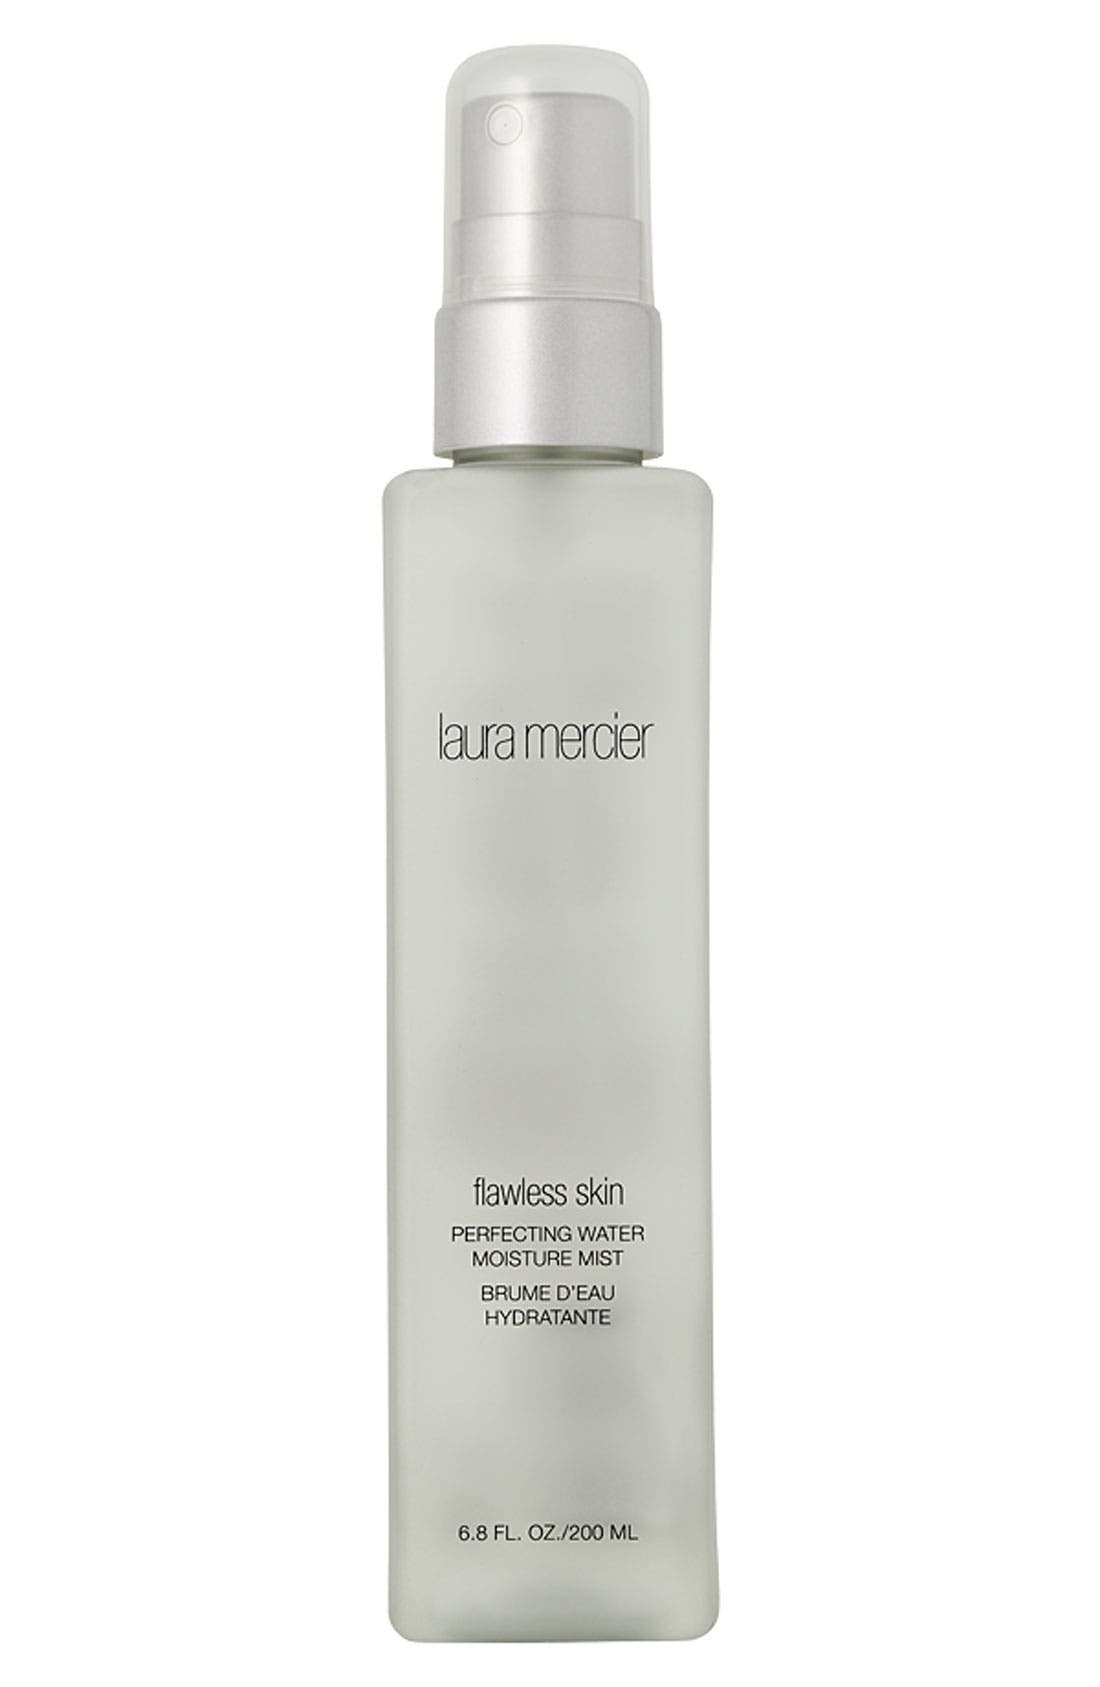 LAURA MERCIER, 'Flawless Skin' Perfecting Water Moisture Mist, Main thumbnail 1, color, NO COLOR